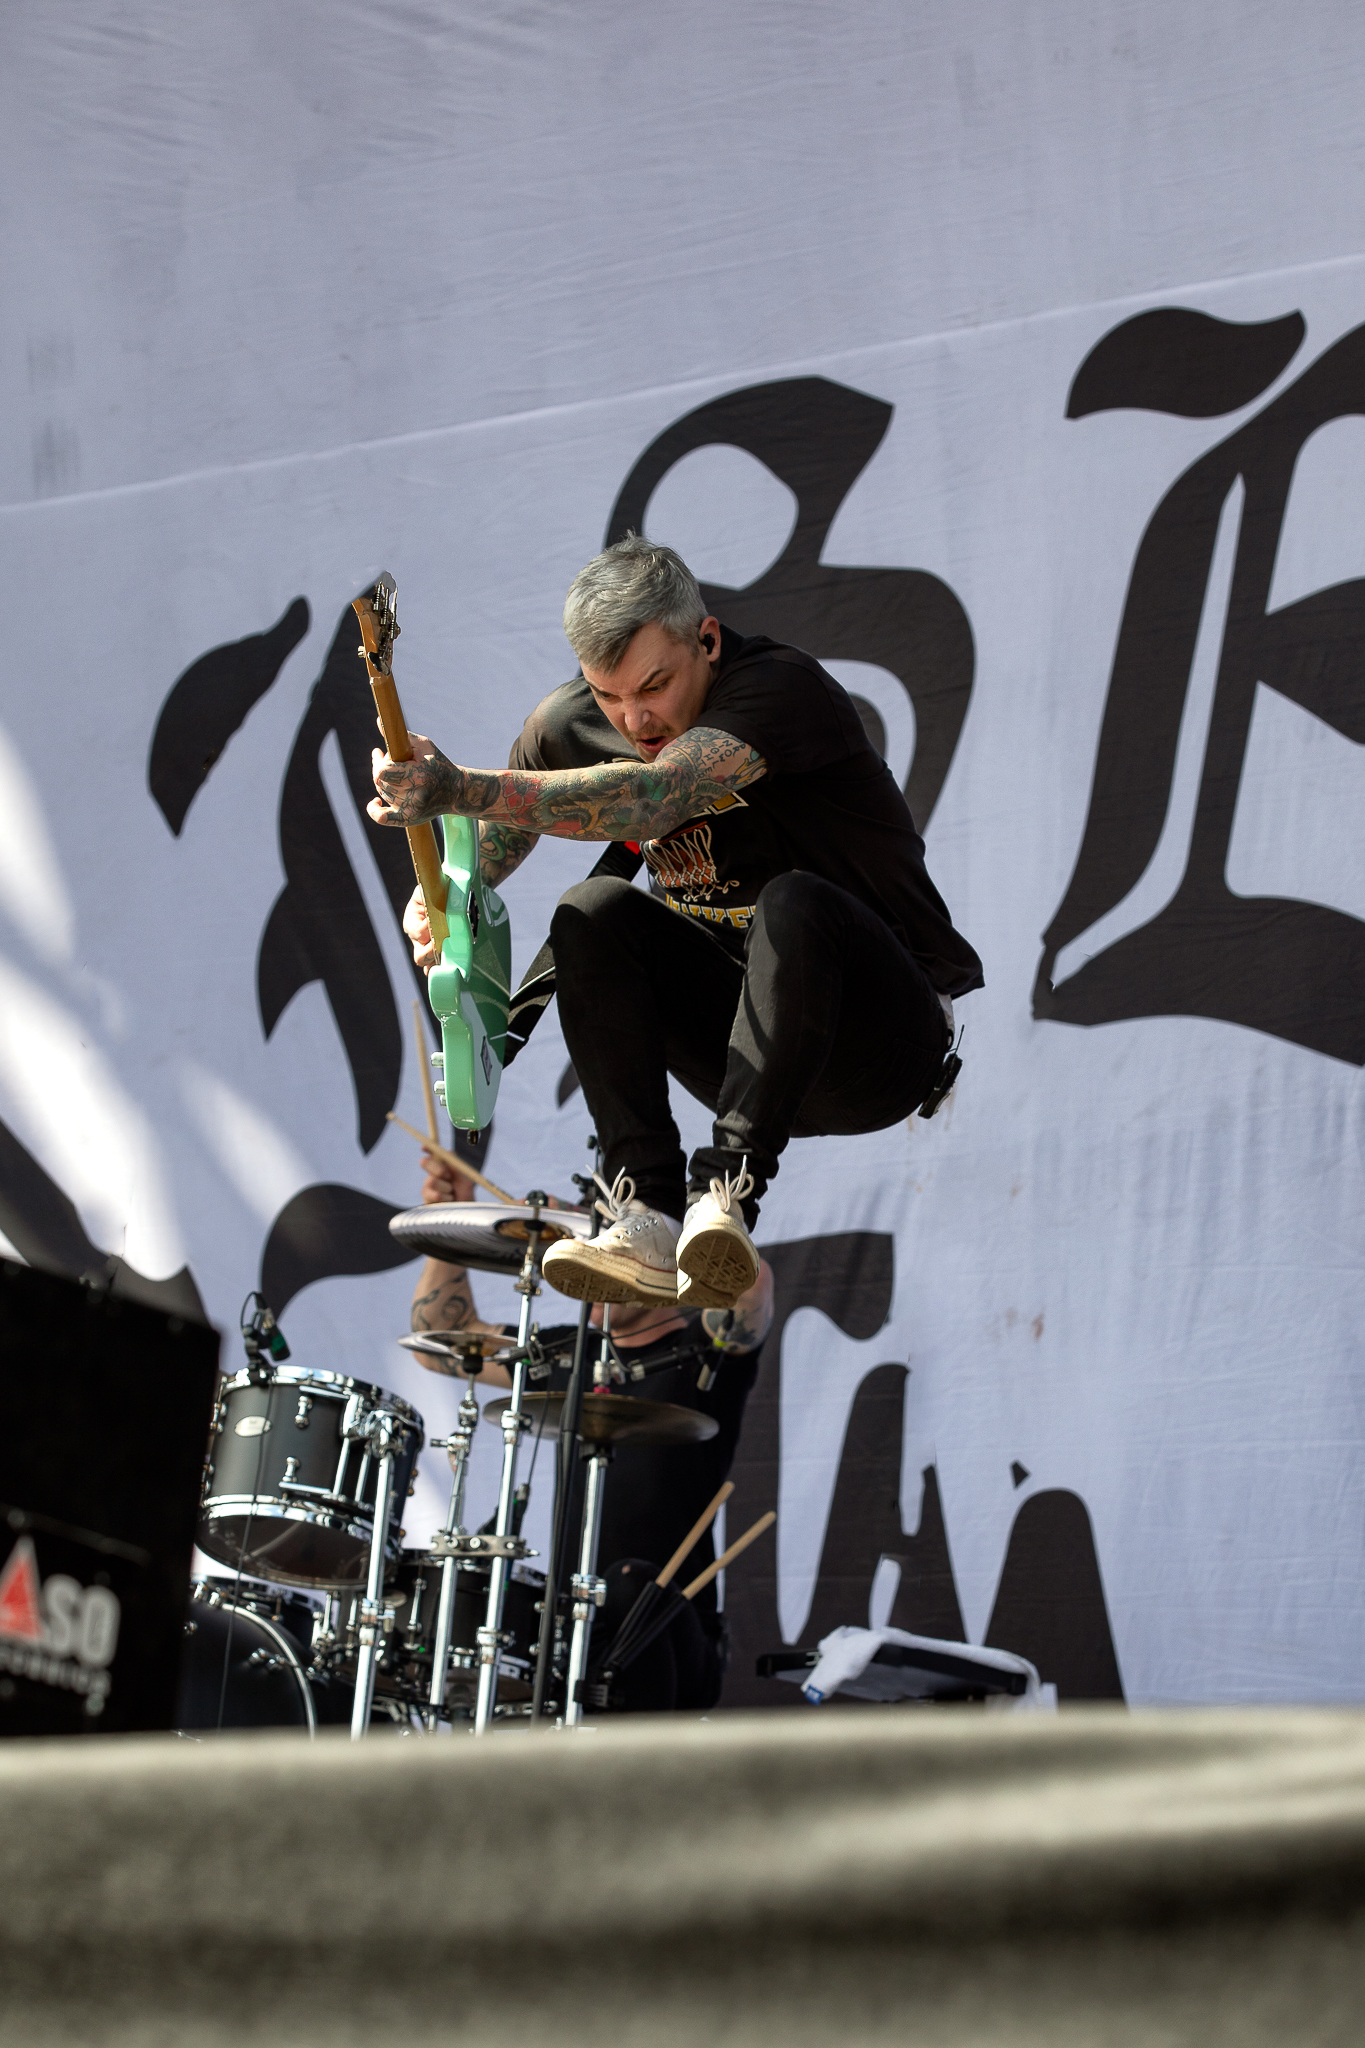 The_Amith_Affliction_Download110319_Nathan- (1).JPG